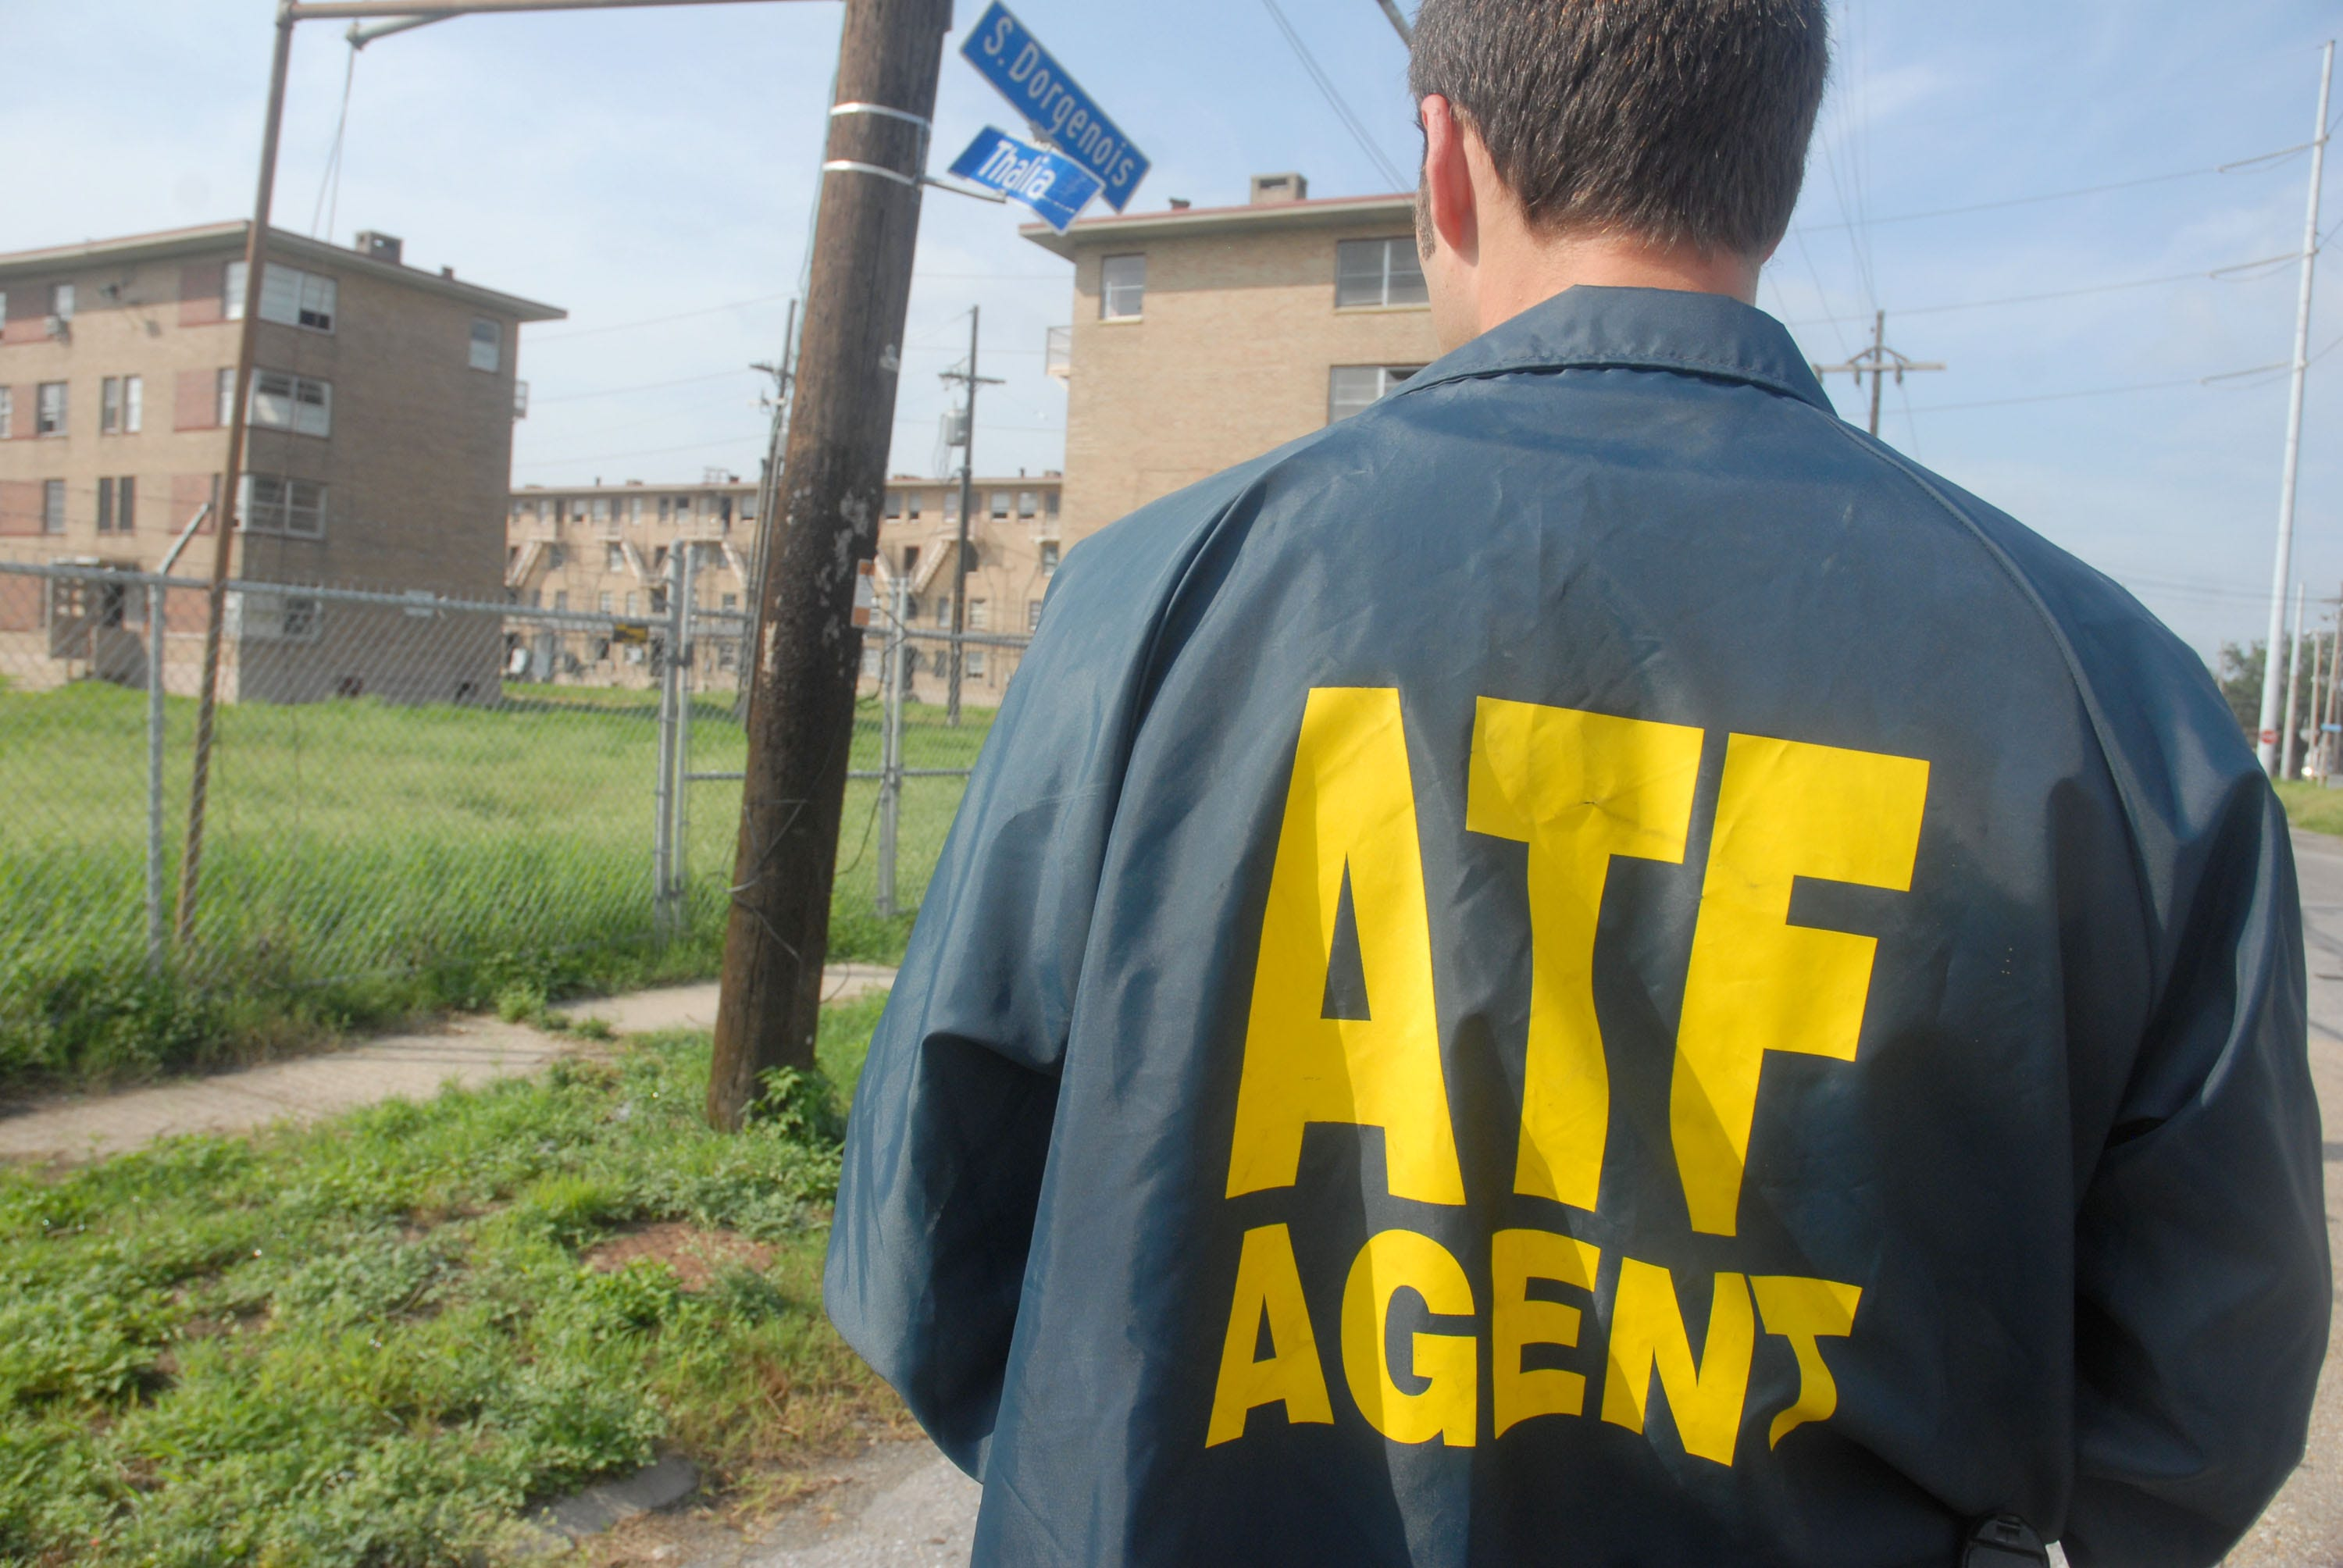 Feds launch search for 'substantial' number of parts, guns stolen from ATF disposal site